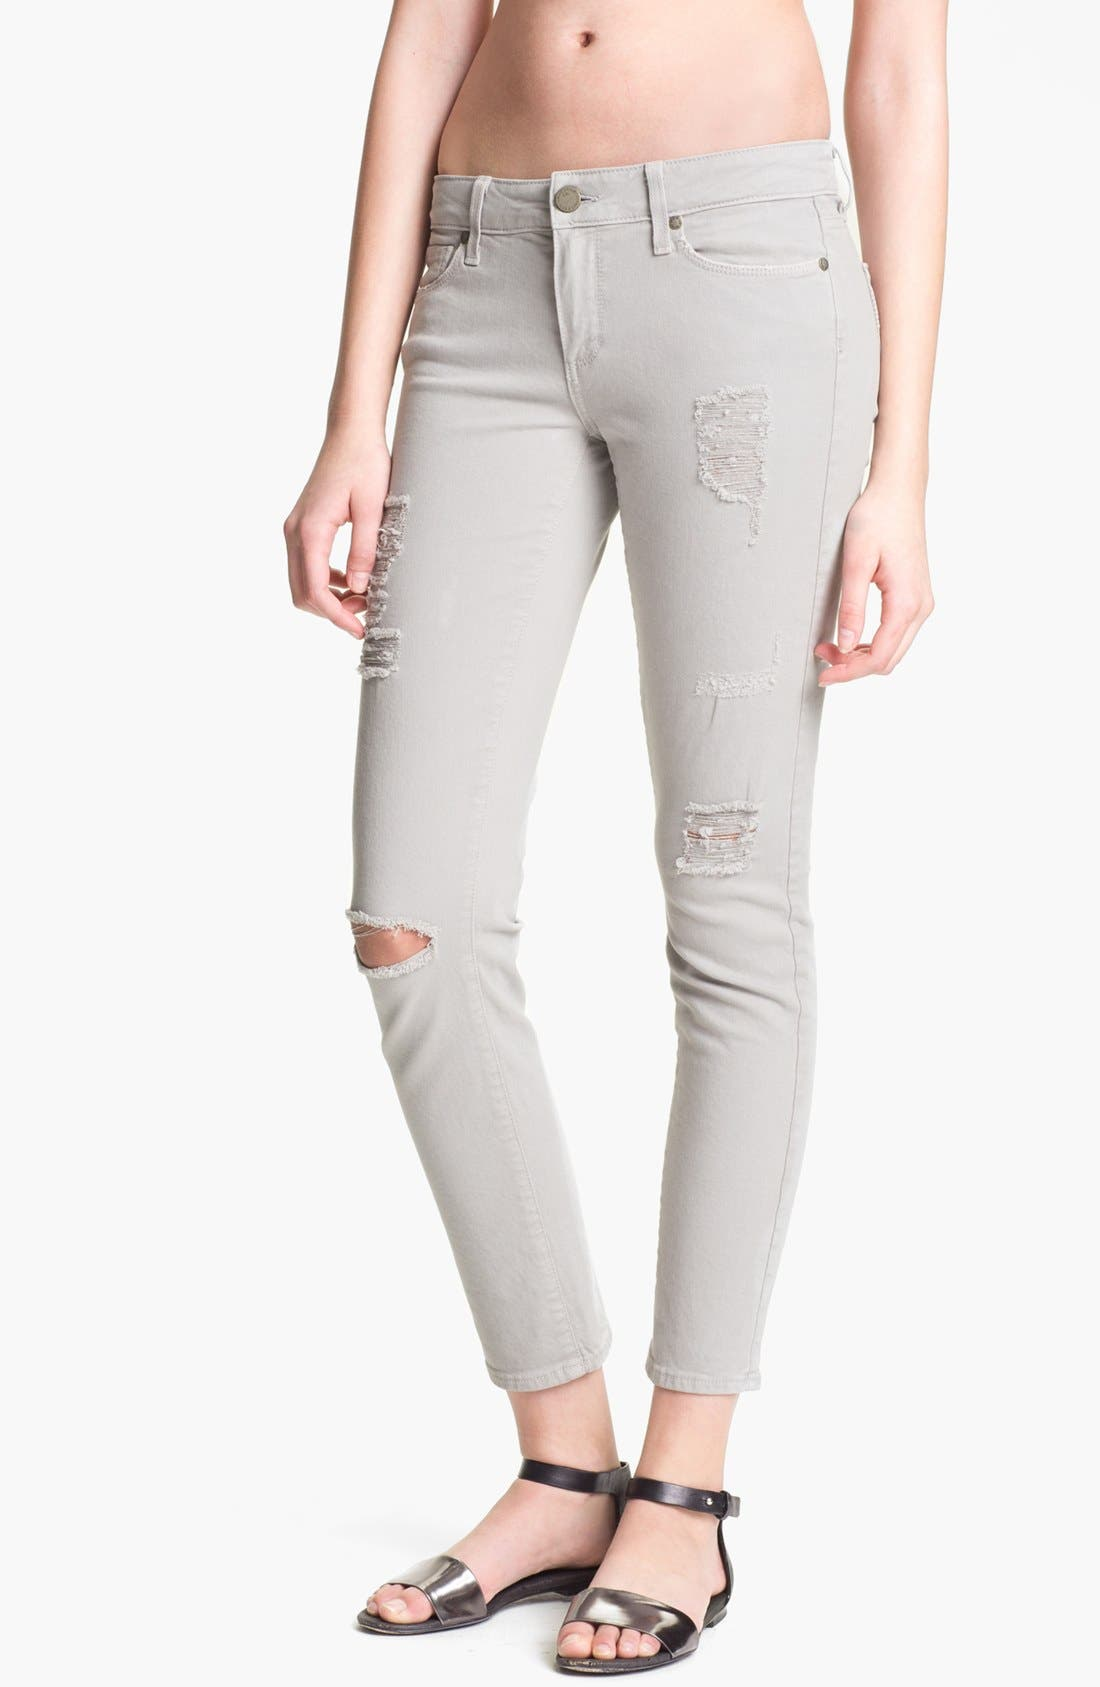 Main Image - Paige Denim 'Skyline' Destroyed Ankle Peg Skinny Jeans (Metal Destruction)